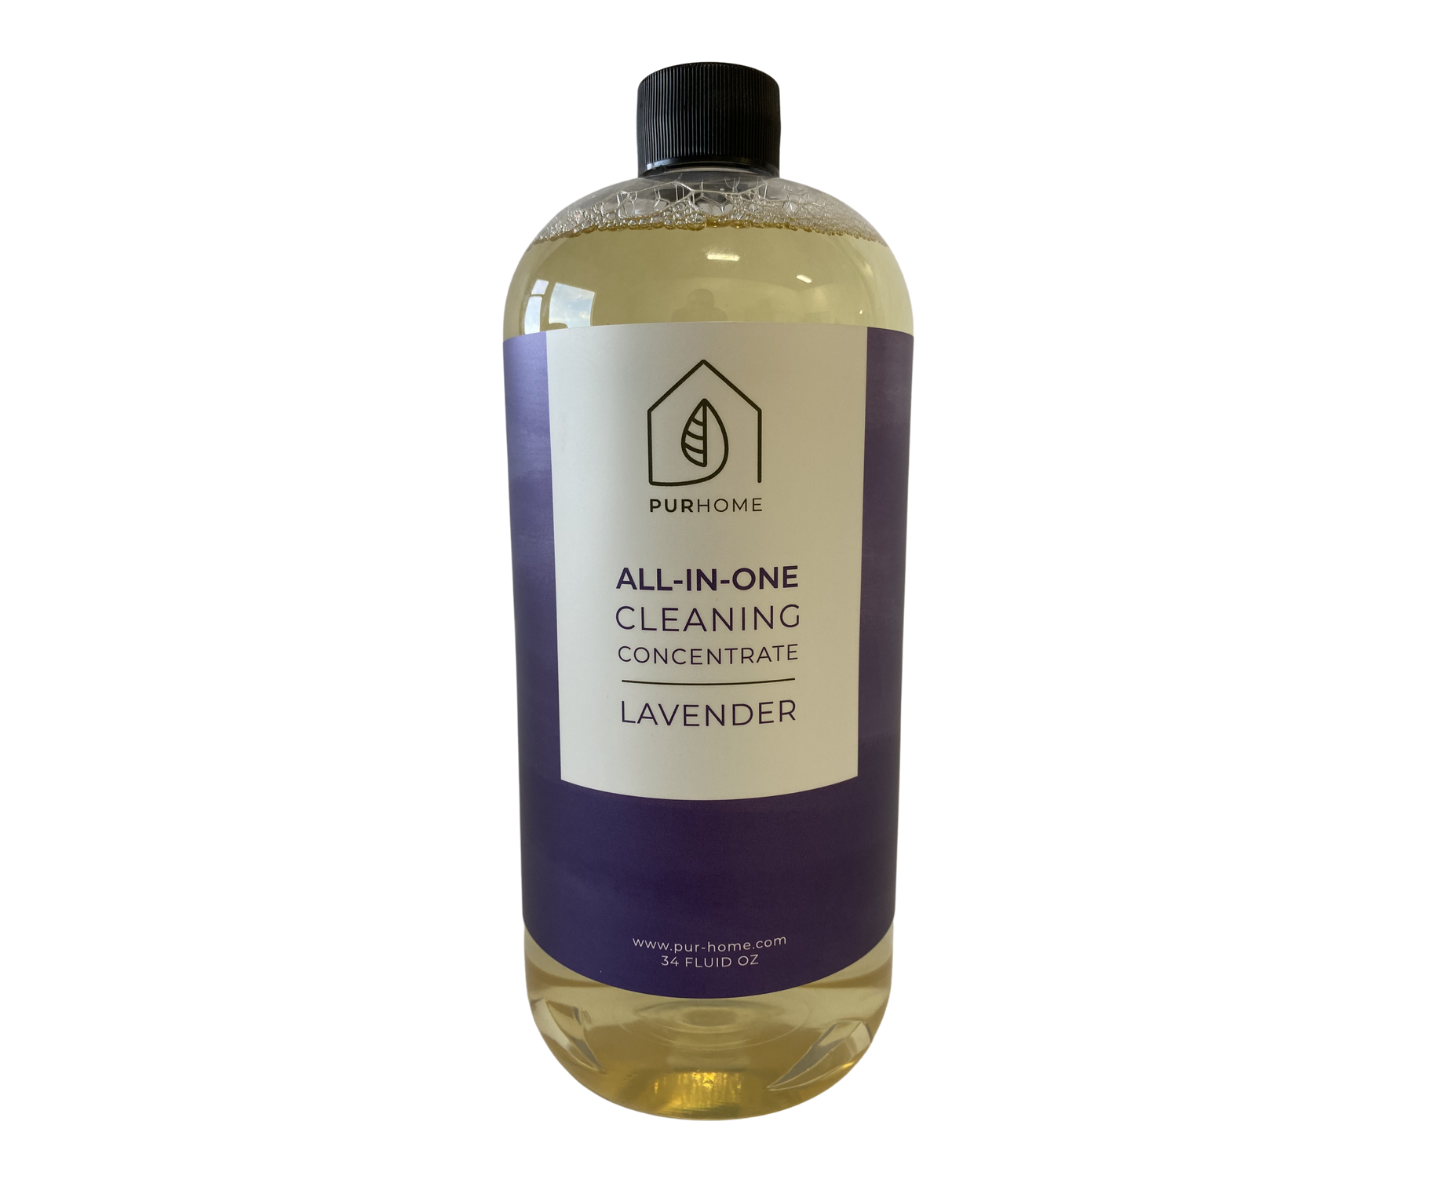 The bottle of lavender-scented cleaner